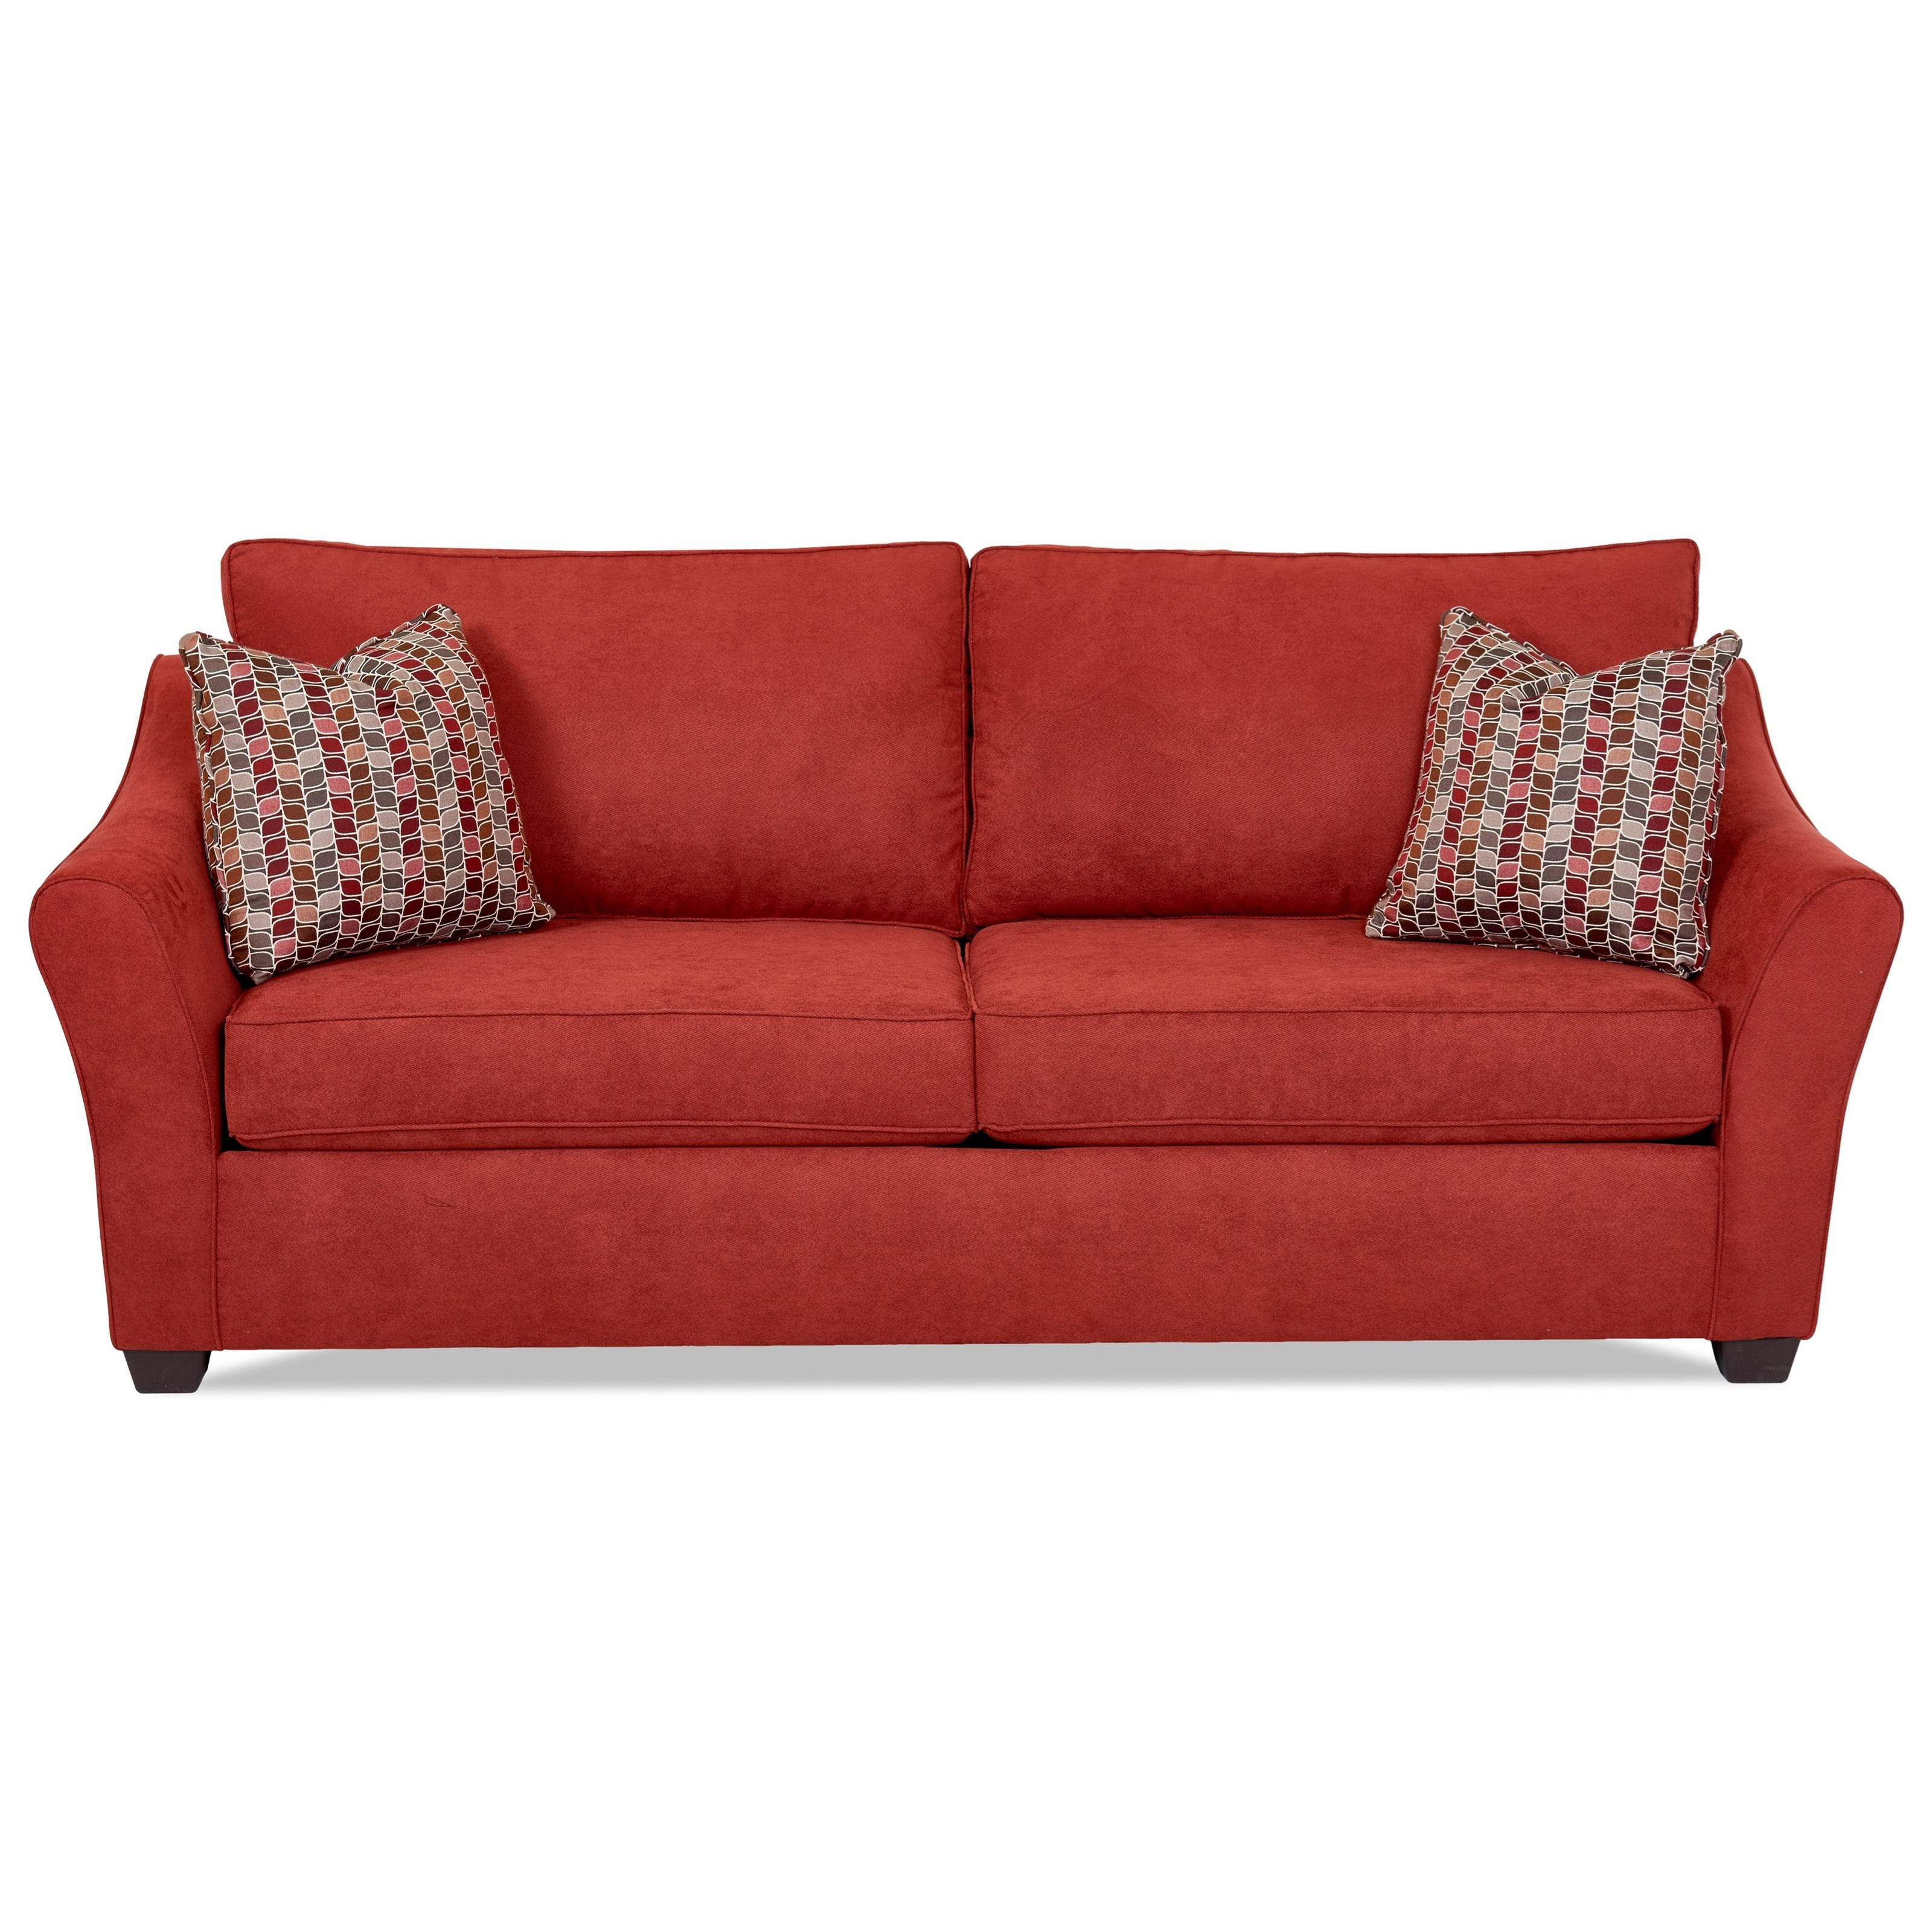 Linville Sofa by Klaussner at Northeast Factory Direct